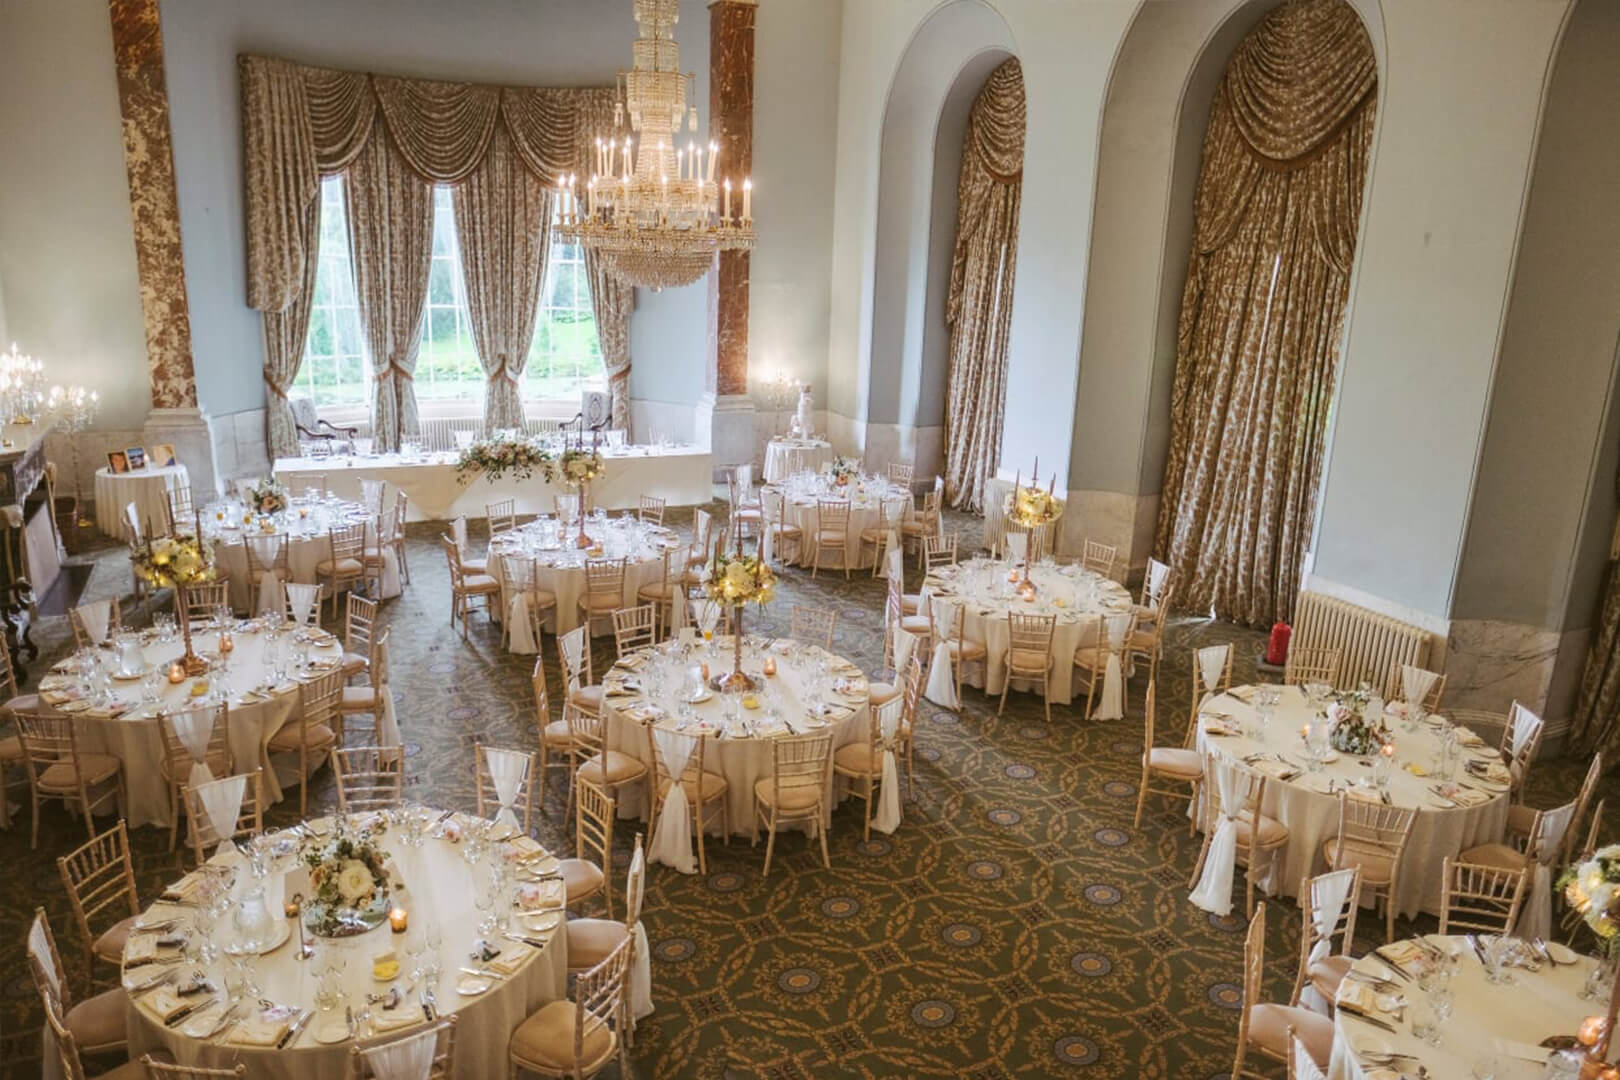 """<p>A stunning space for ceremonies and wedding breakfasts, the Ballroom is inlaid with exquisite marble and Florentine fireplaces was once said to be """"one of the most magnificent rooms in the country"""".</p>"""